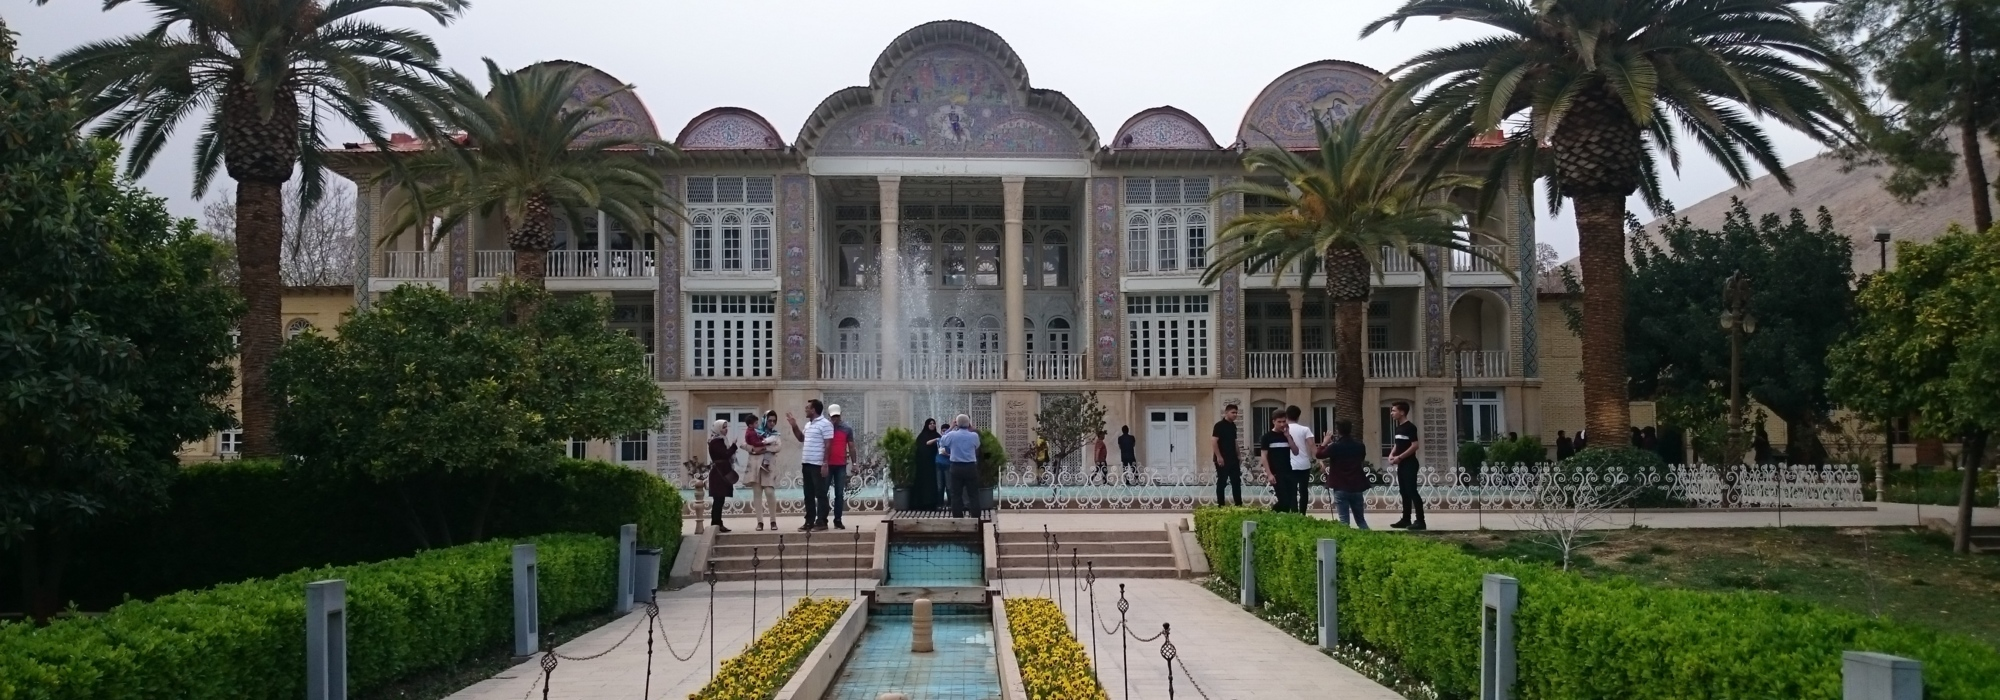 Tour for Iran, Iran Tour, Persian Tour